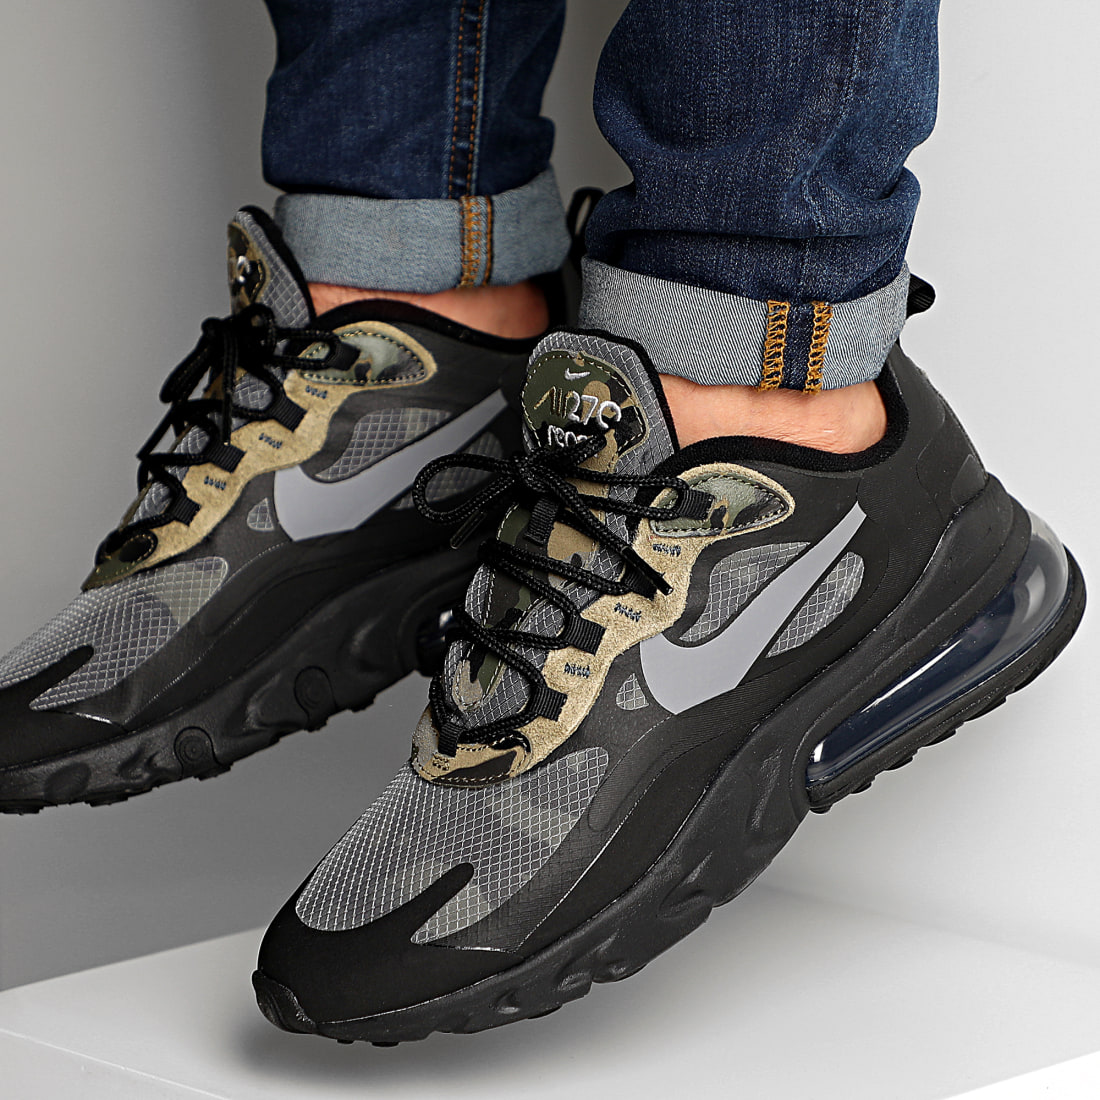 Nike Baskets Air Max 270 React CT5528 Black White